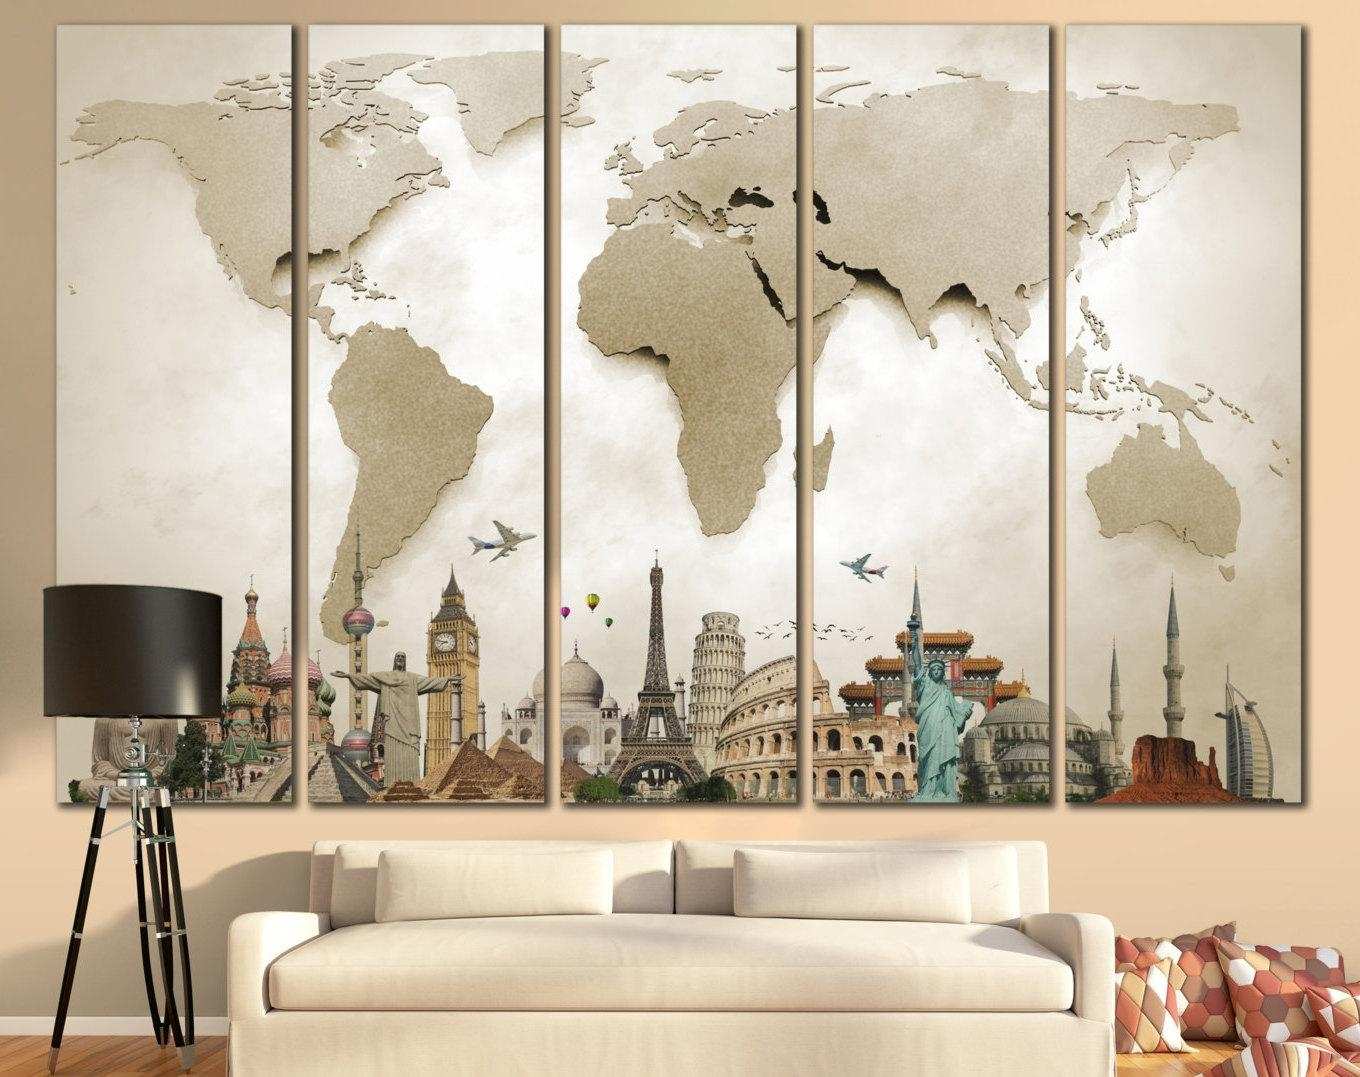 Living Room: Large Canvas Prints Unique Wall Art For Home Decor Throughout Big Canvas Wall Art (Image 11 of 21)